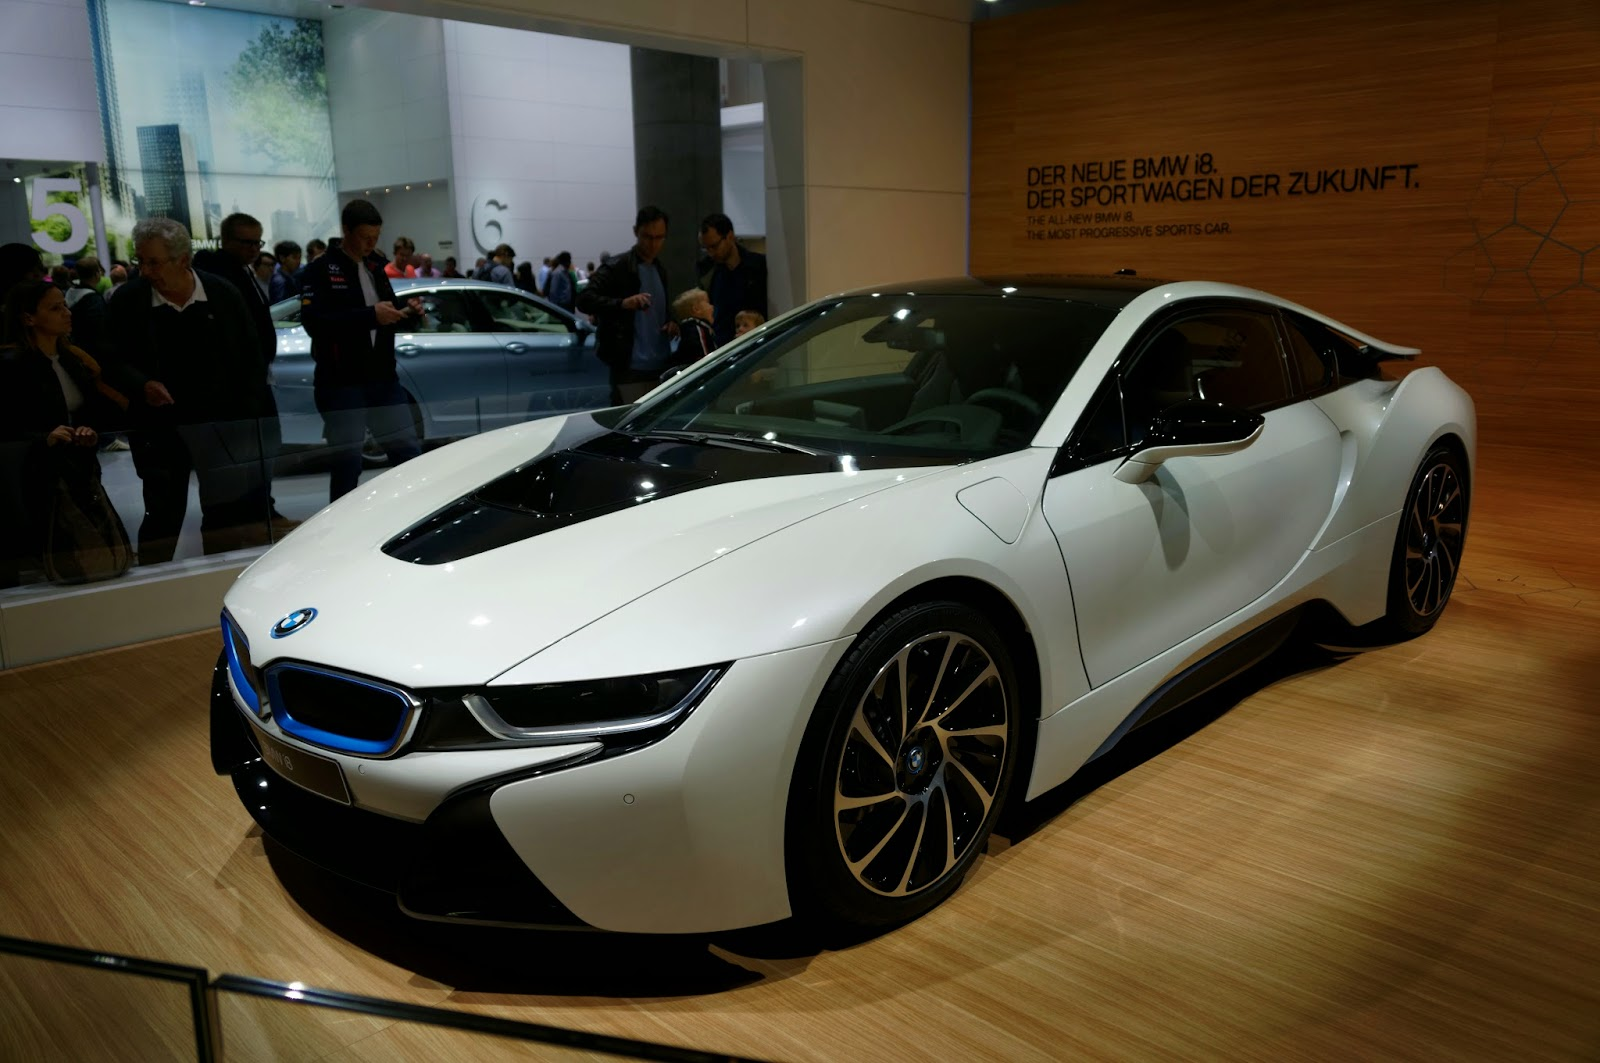 Glancing Sophistication 2 Environmentally Friendly Vehicles BMW i3 and i8